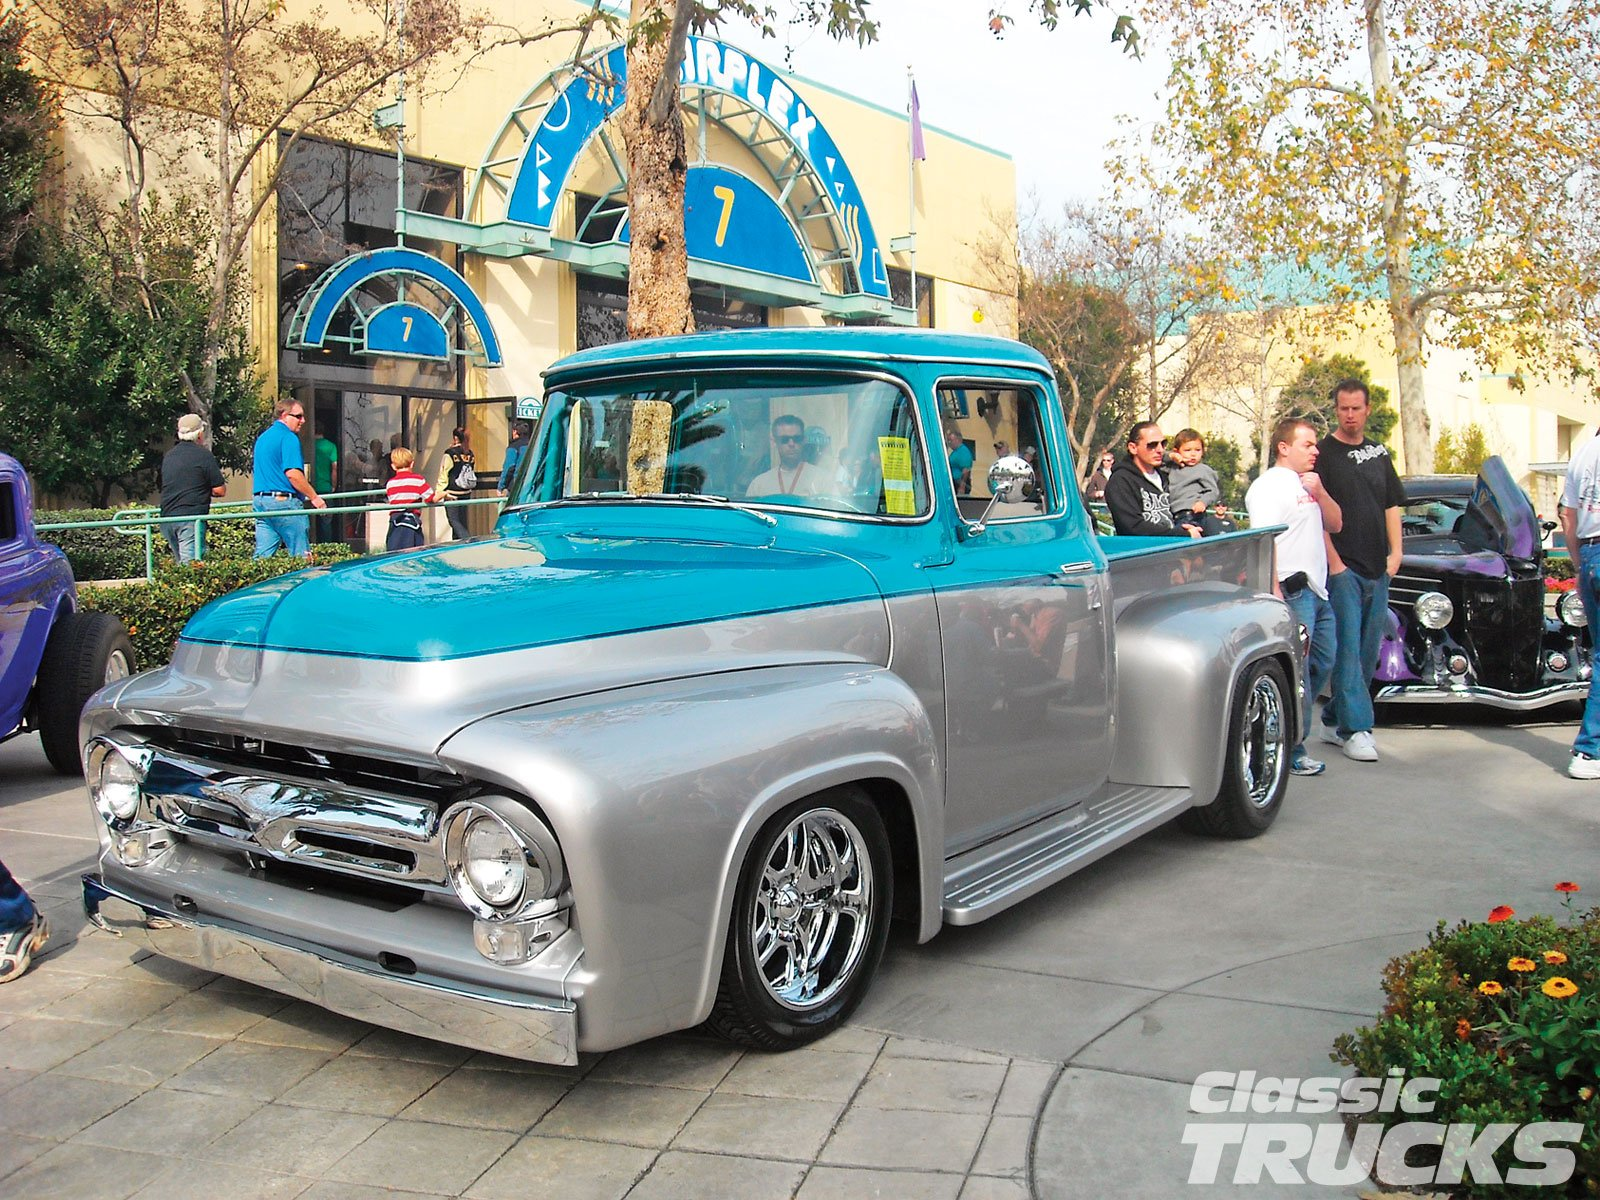 Old Ford Truck Wallpaper Show classic ford truck old ford 1600x1200